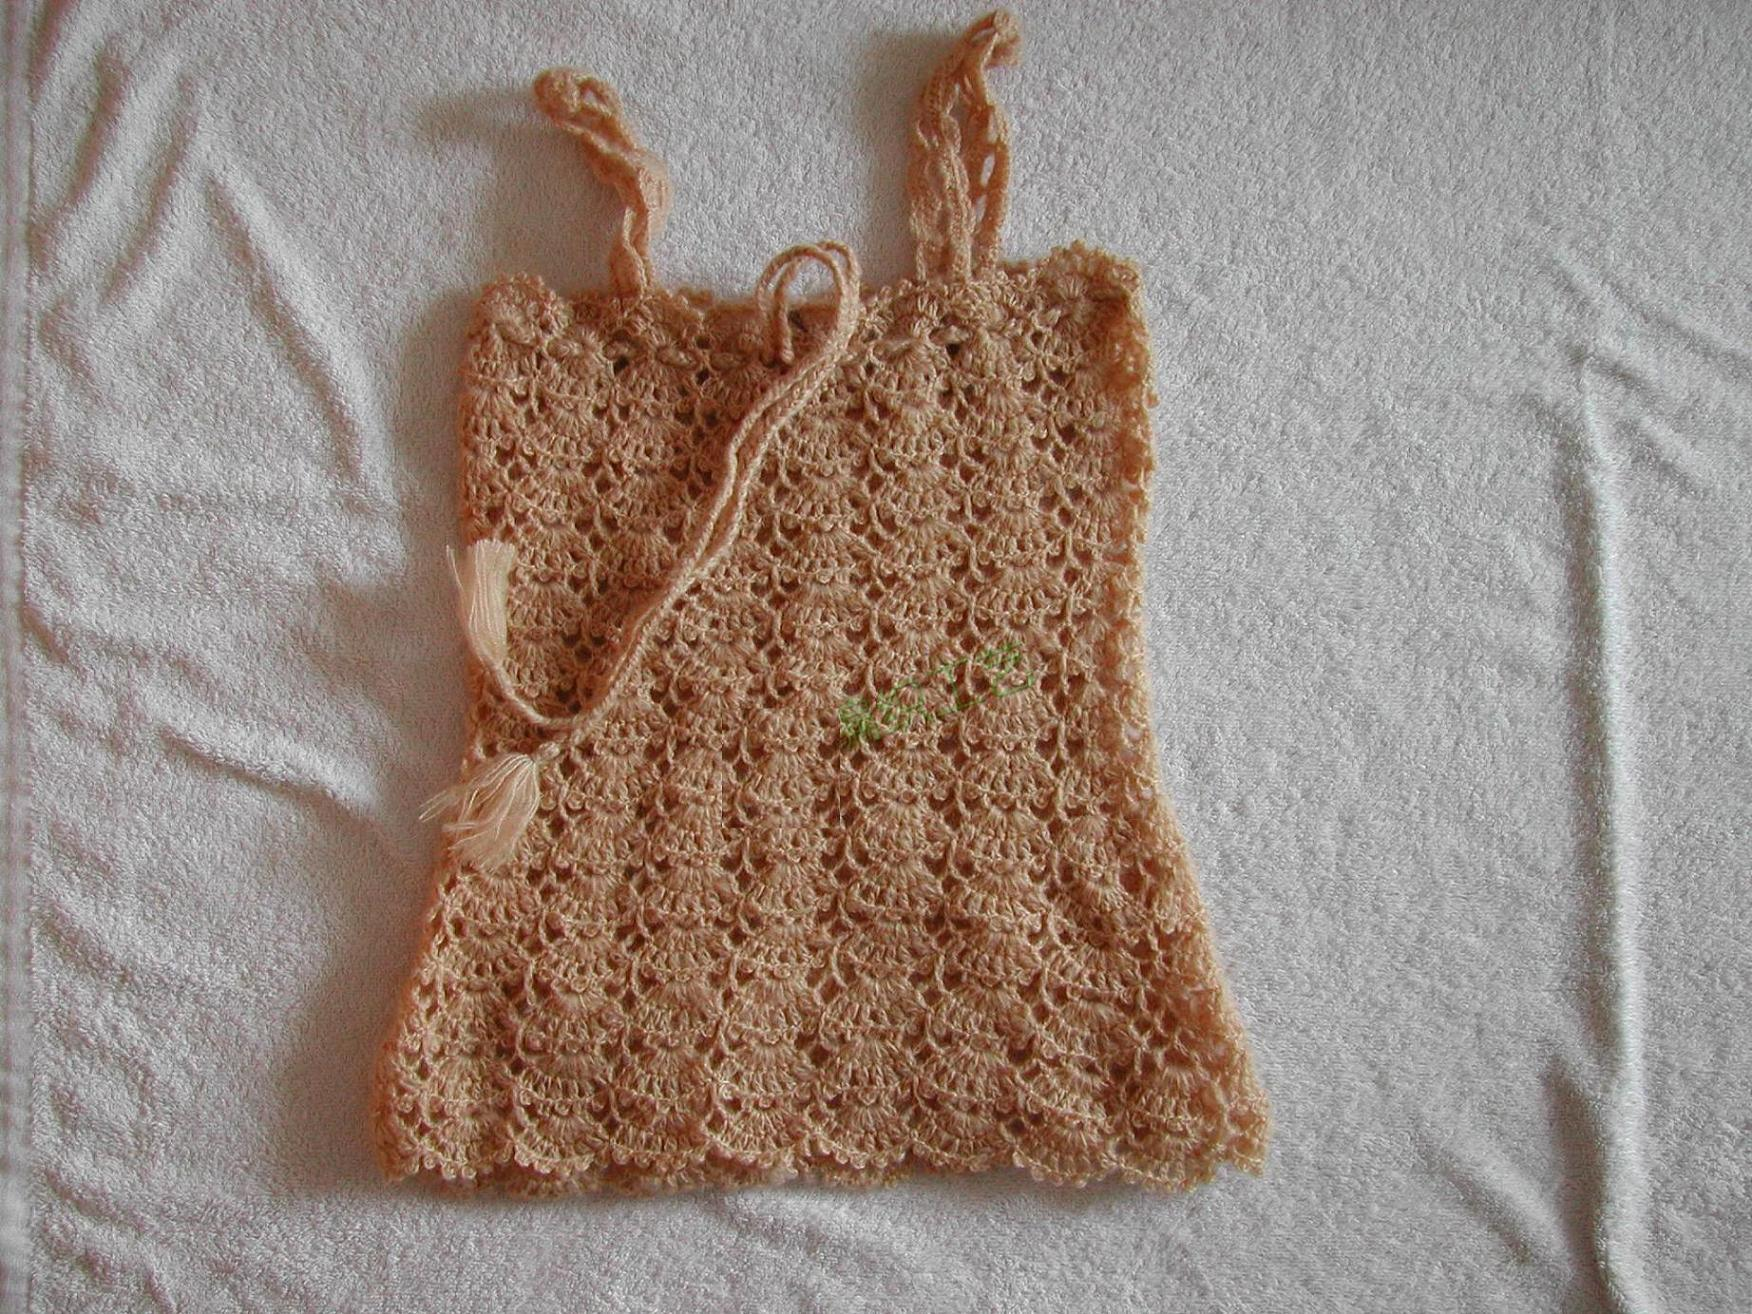 Manufacture Of Knitted Clothes As A Business